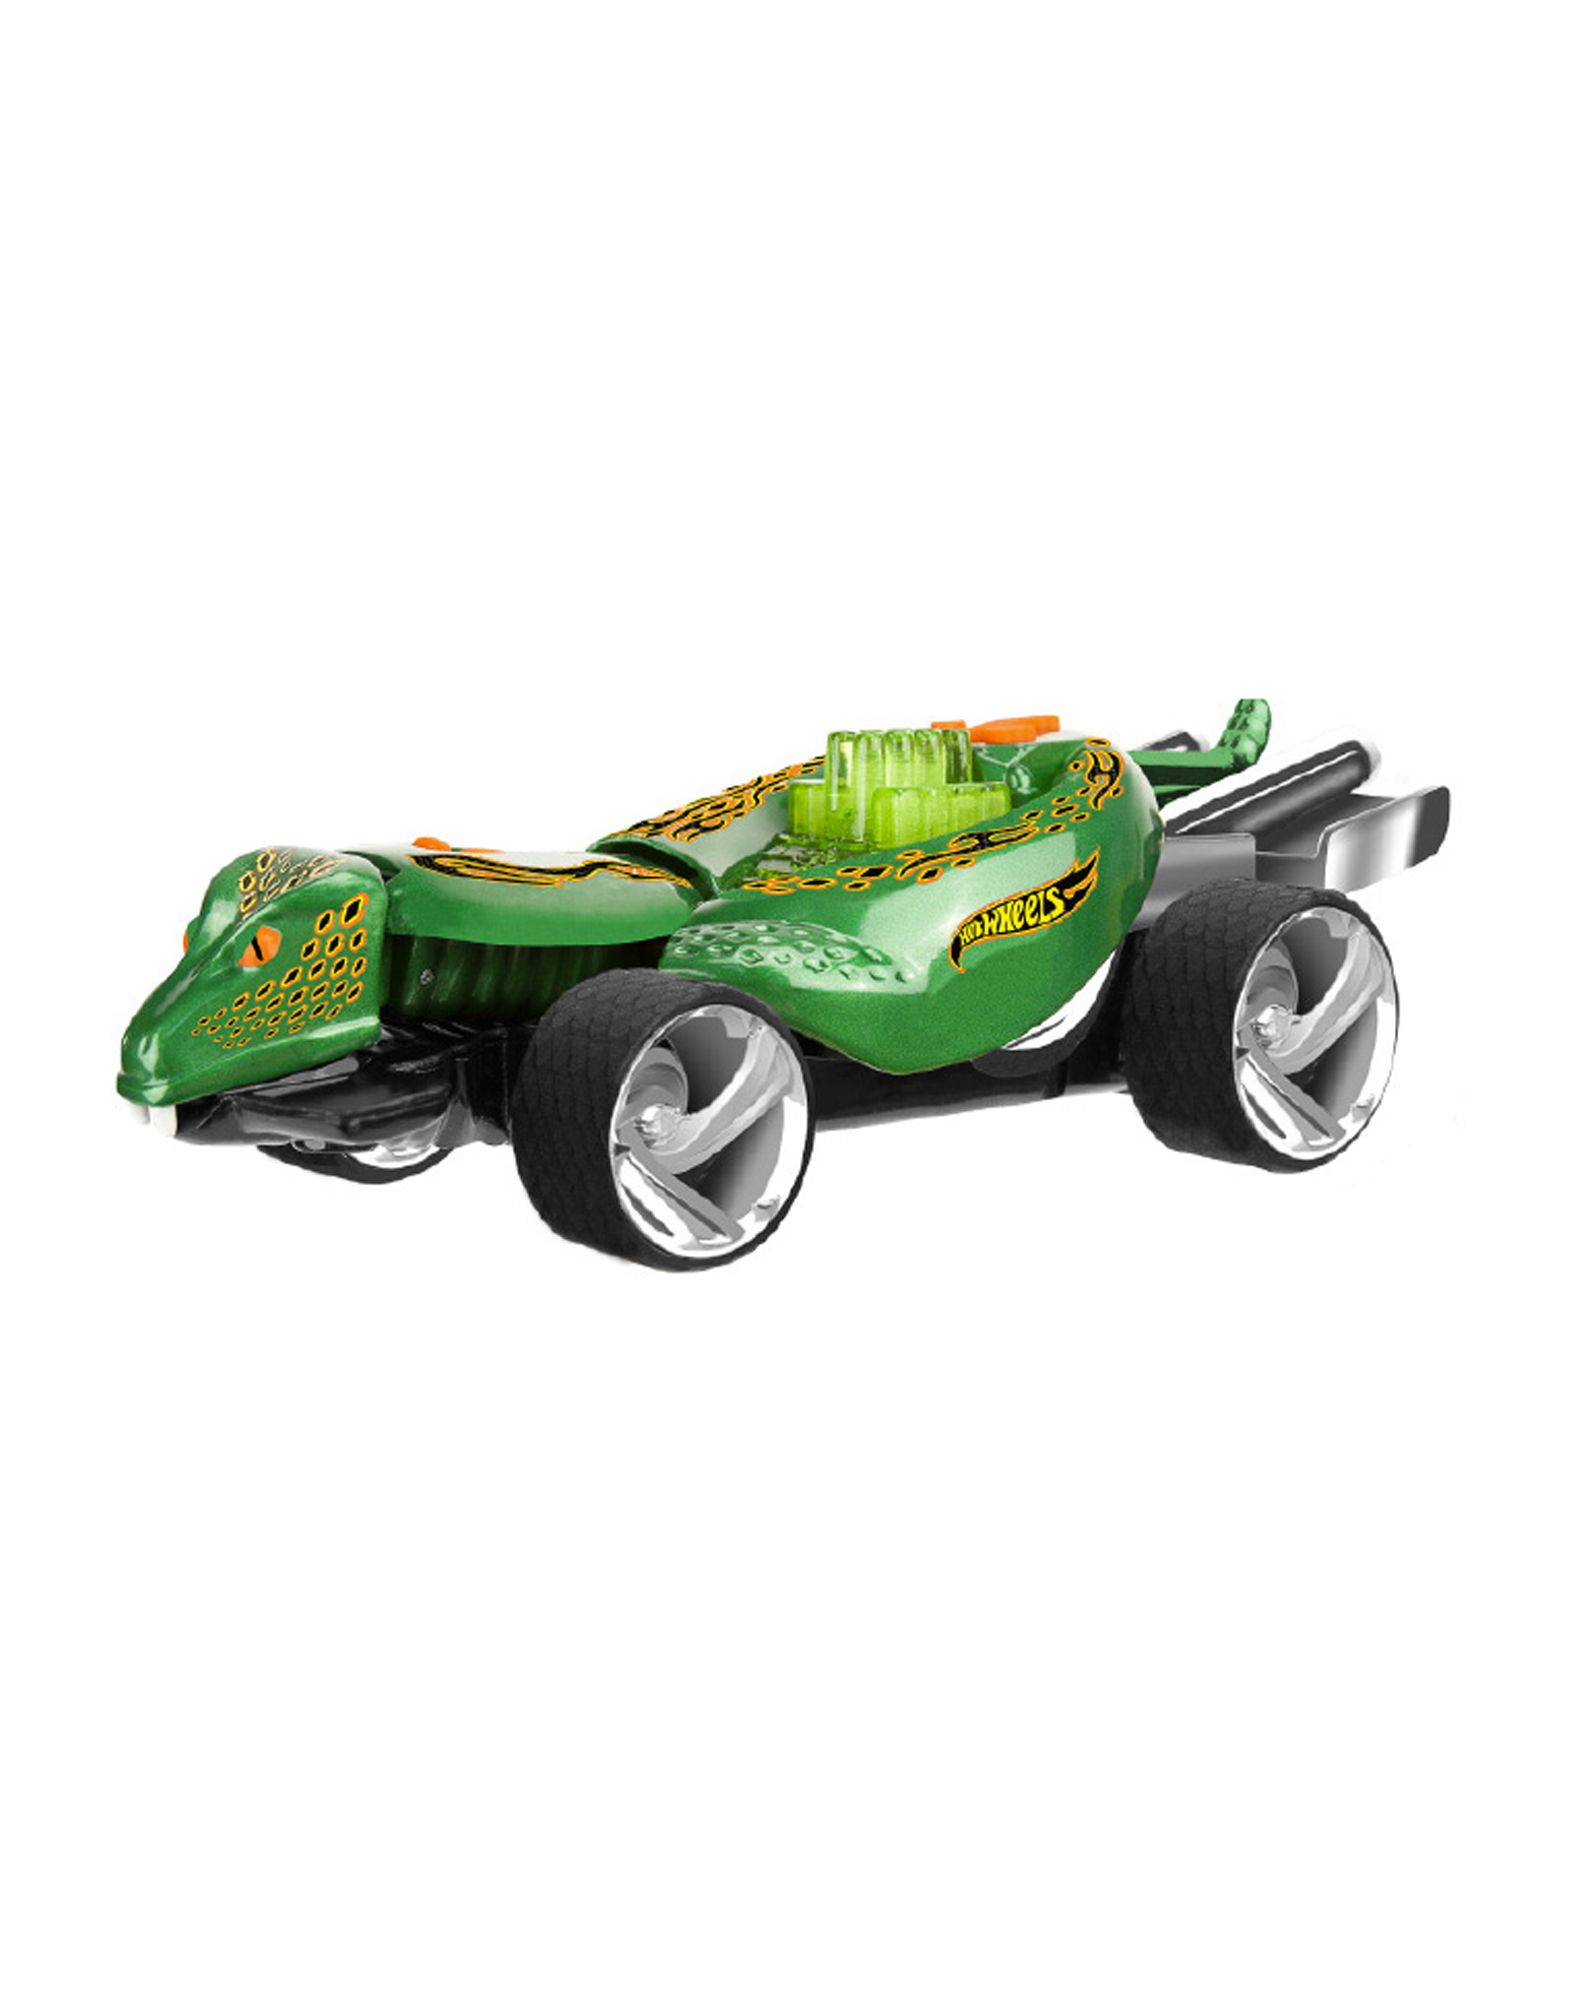 HOT WHEELS Машинки, самолёты и др. машинки и мотоциклы 1toy машинка р у 1тoy hot wheels н68 со светом чёрная